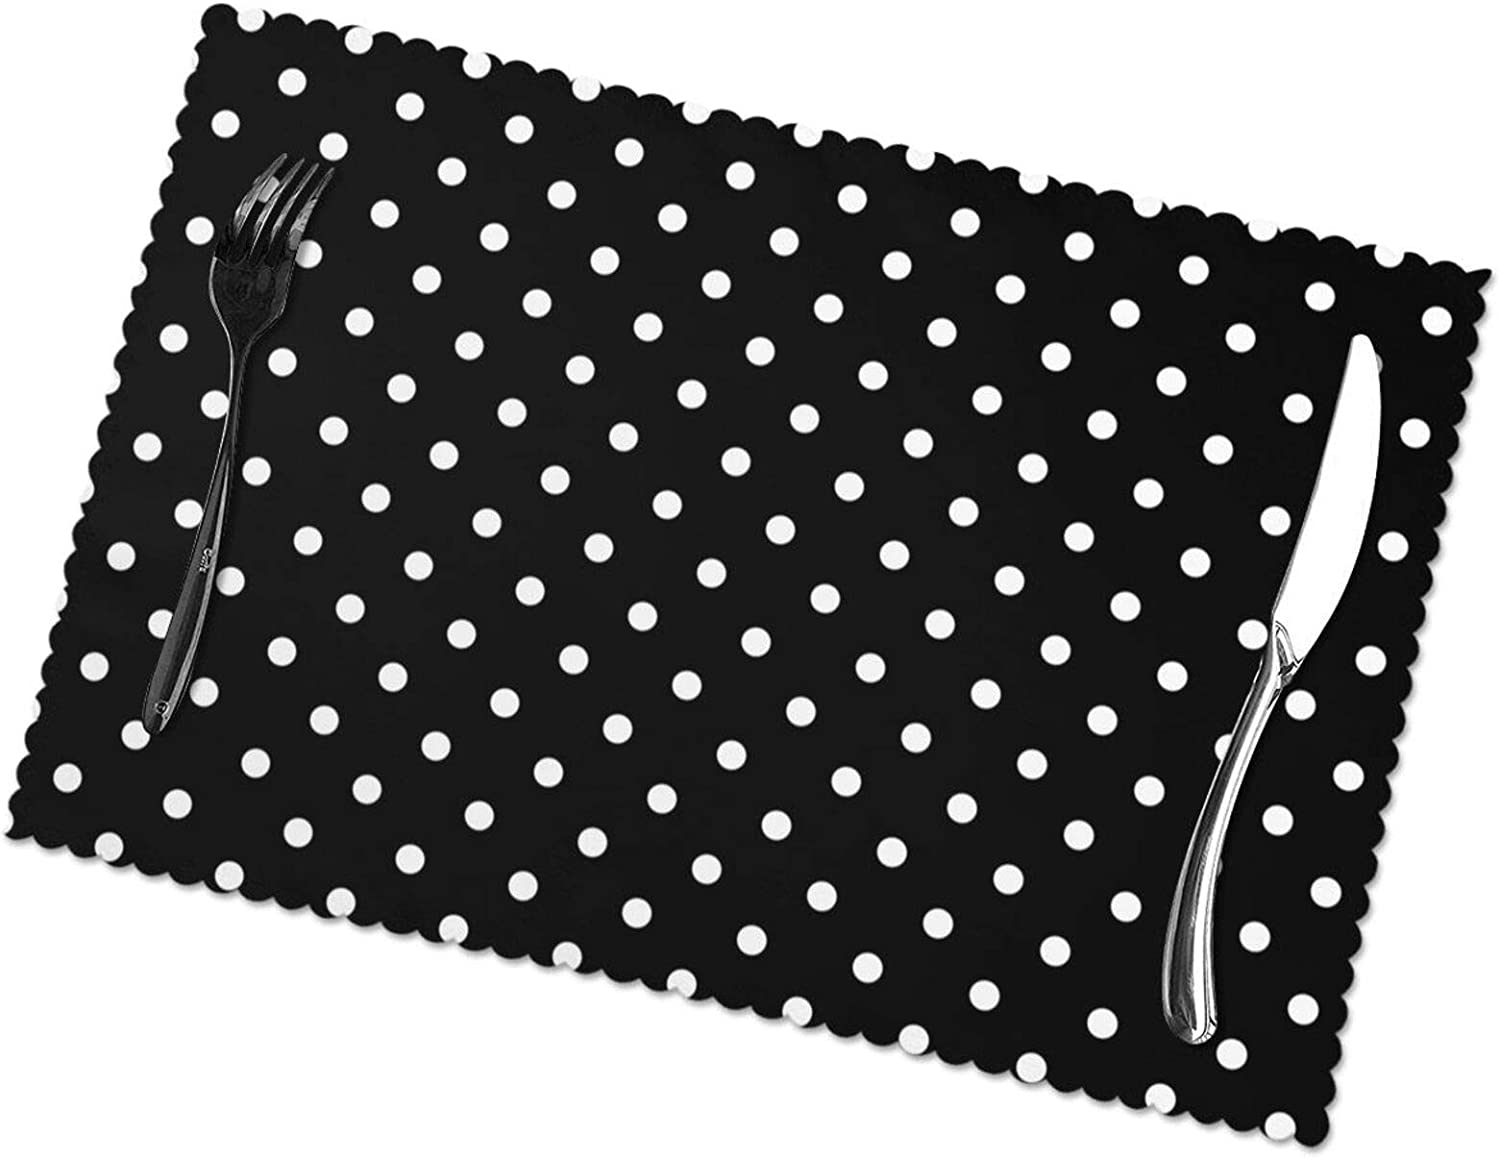 Bargburm Black and White Polka Dot Set of 6 Placemats for Dining Table, Snack Drink Heat Insulation Stain Resistant Anti-Skid Washable Table Mats for Dining Kitchen Restaurant Table, 12 X 18 Inch